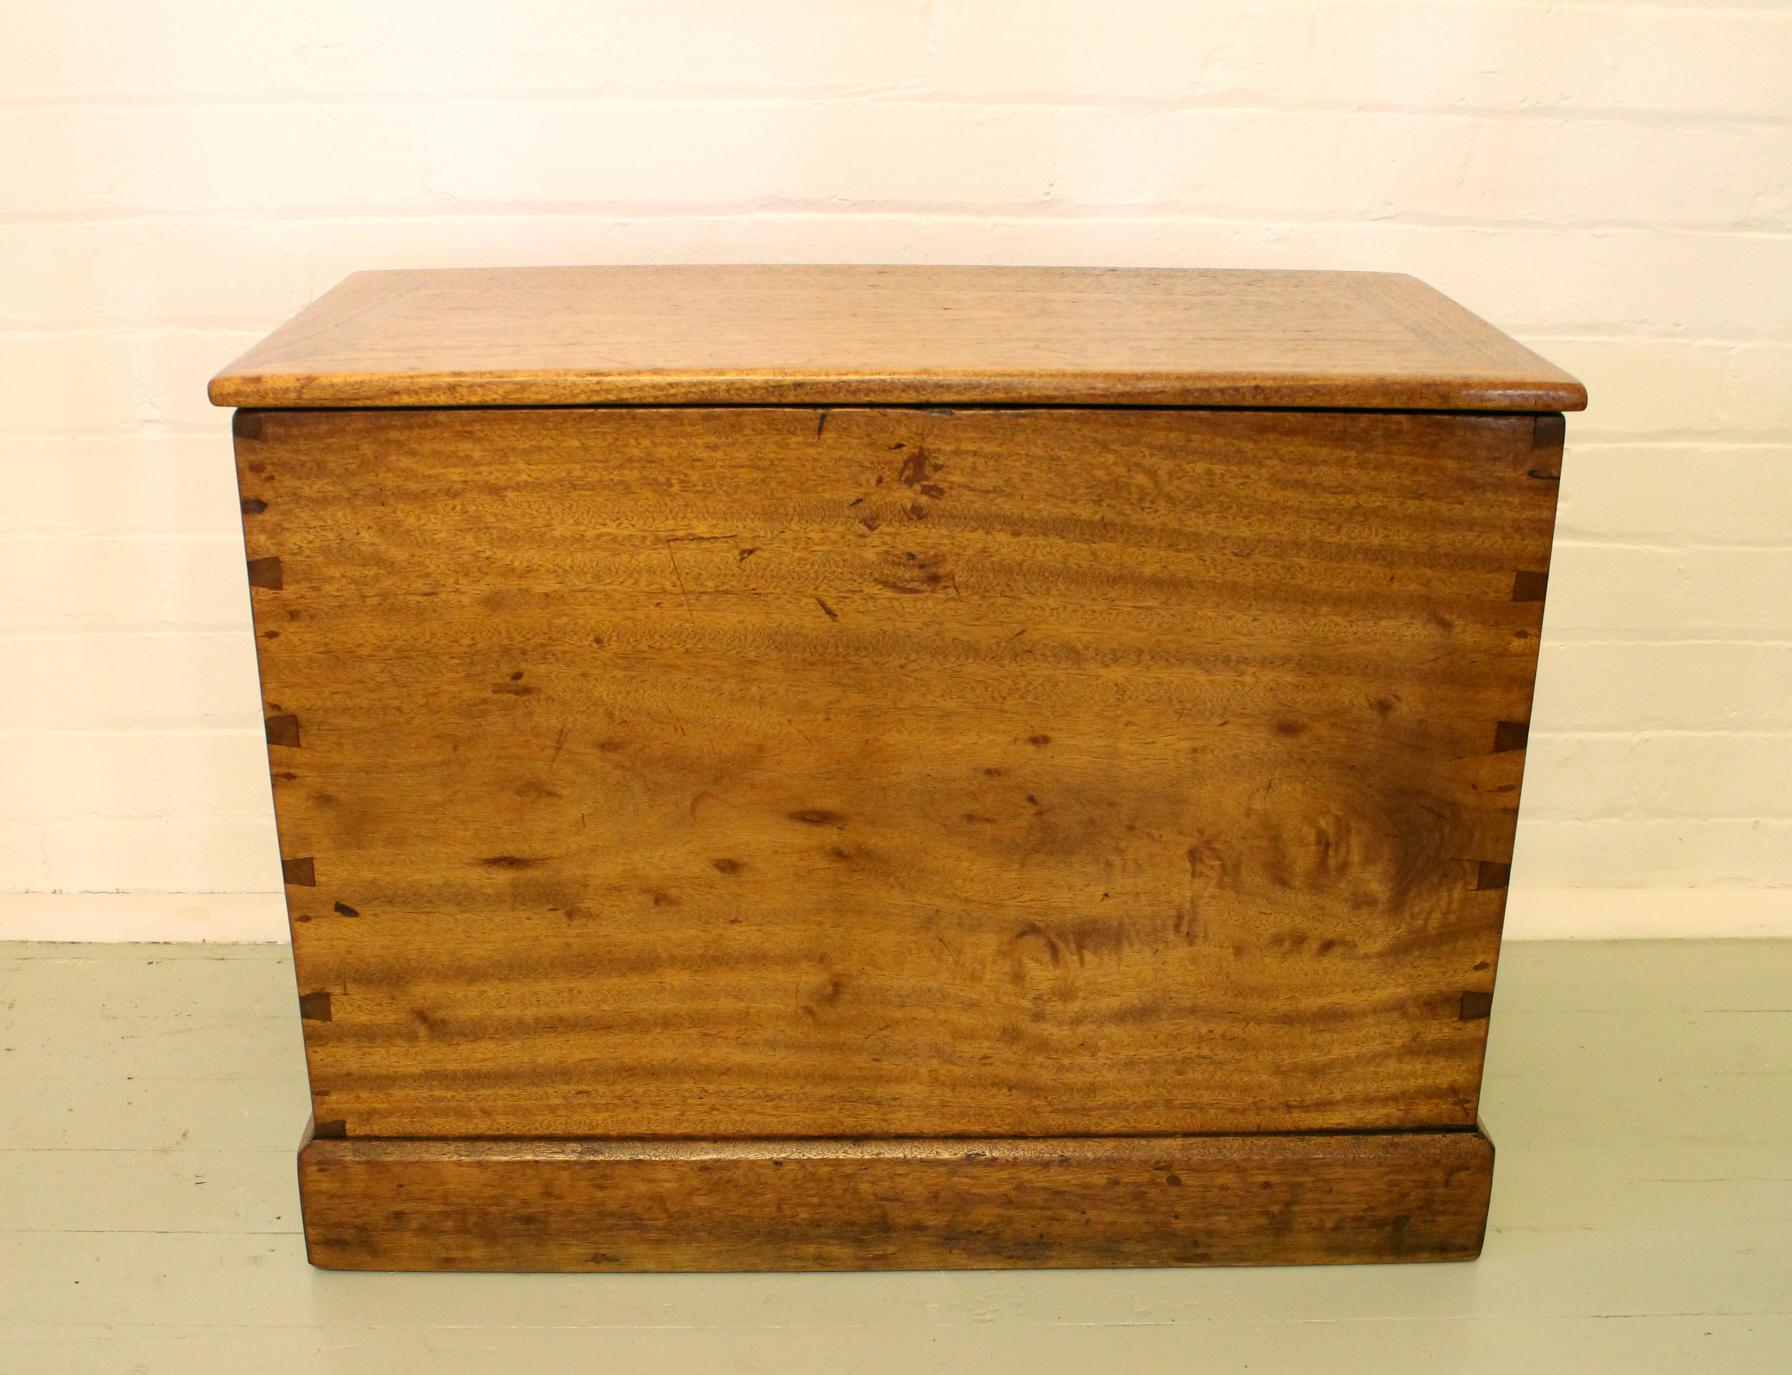 Antique Blanket Box.jpg